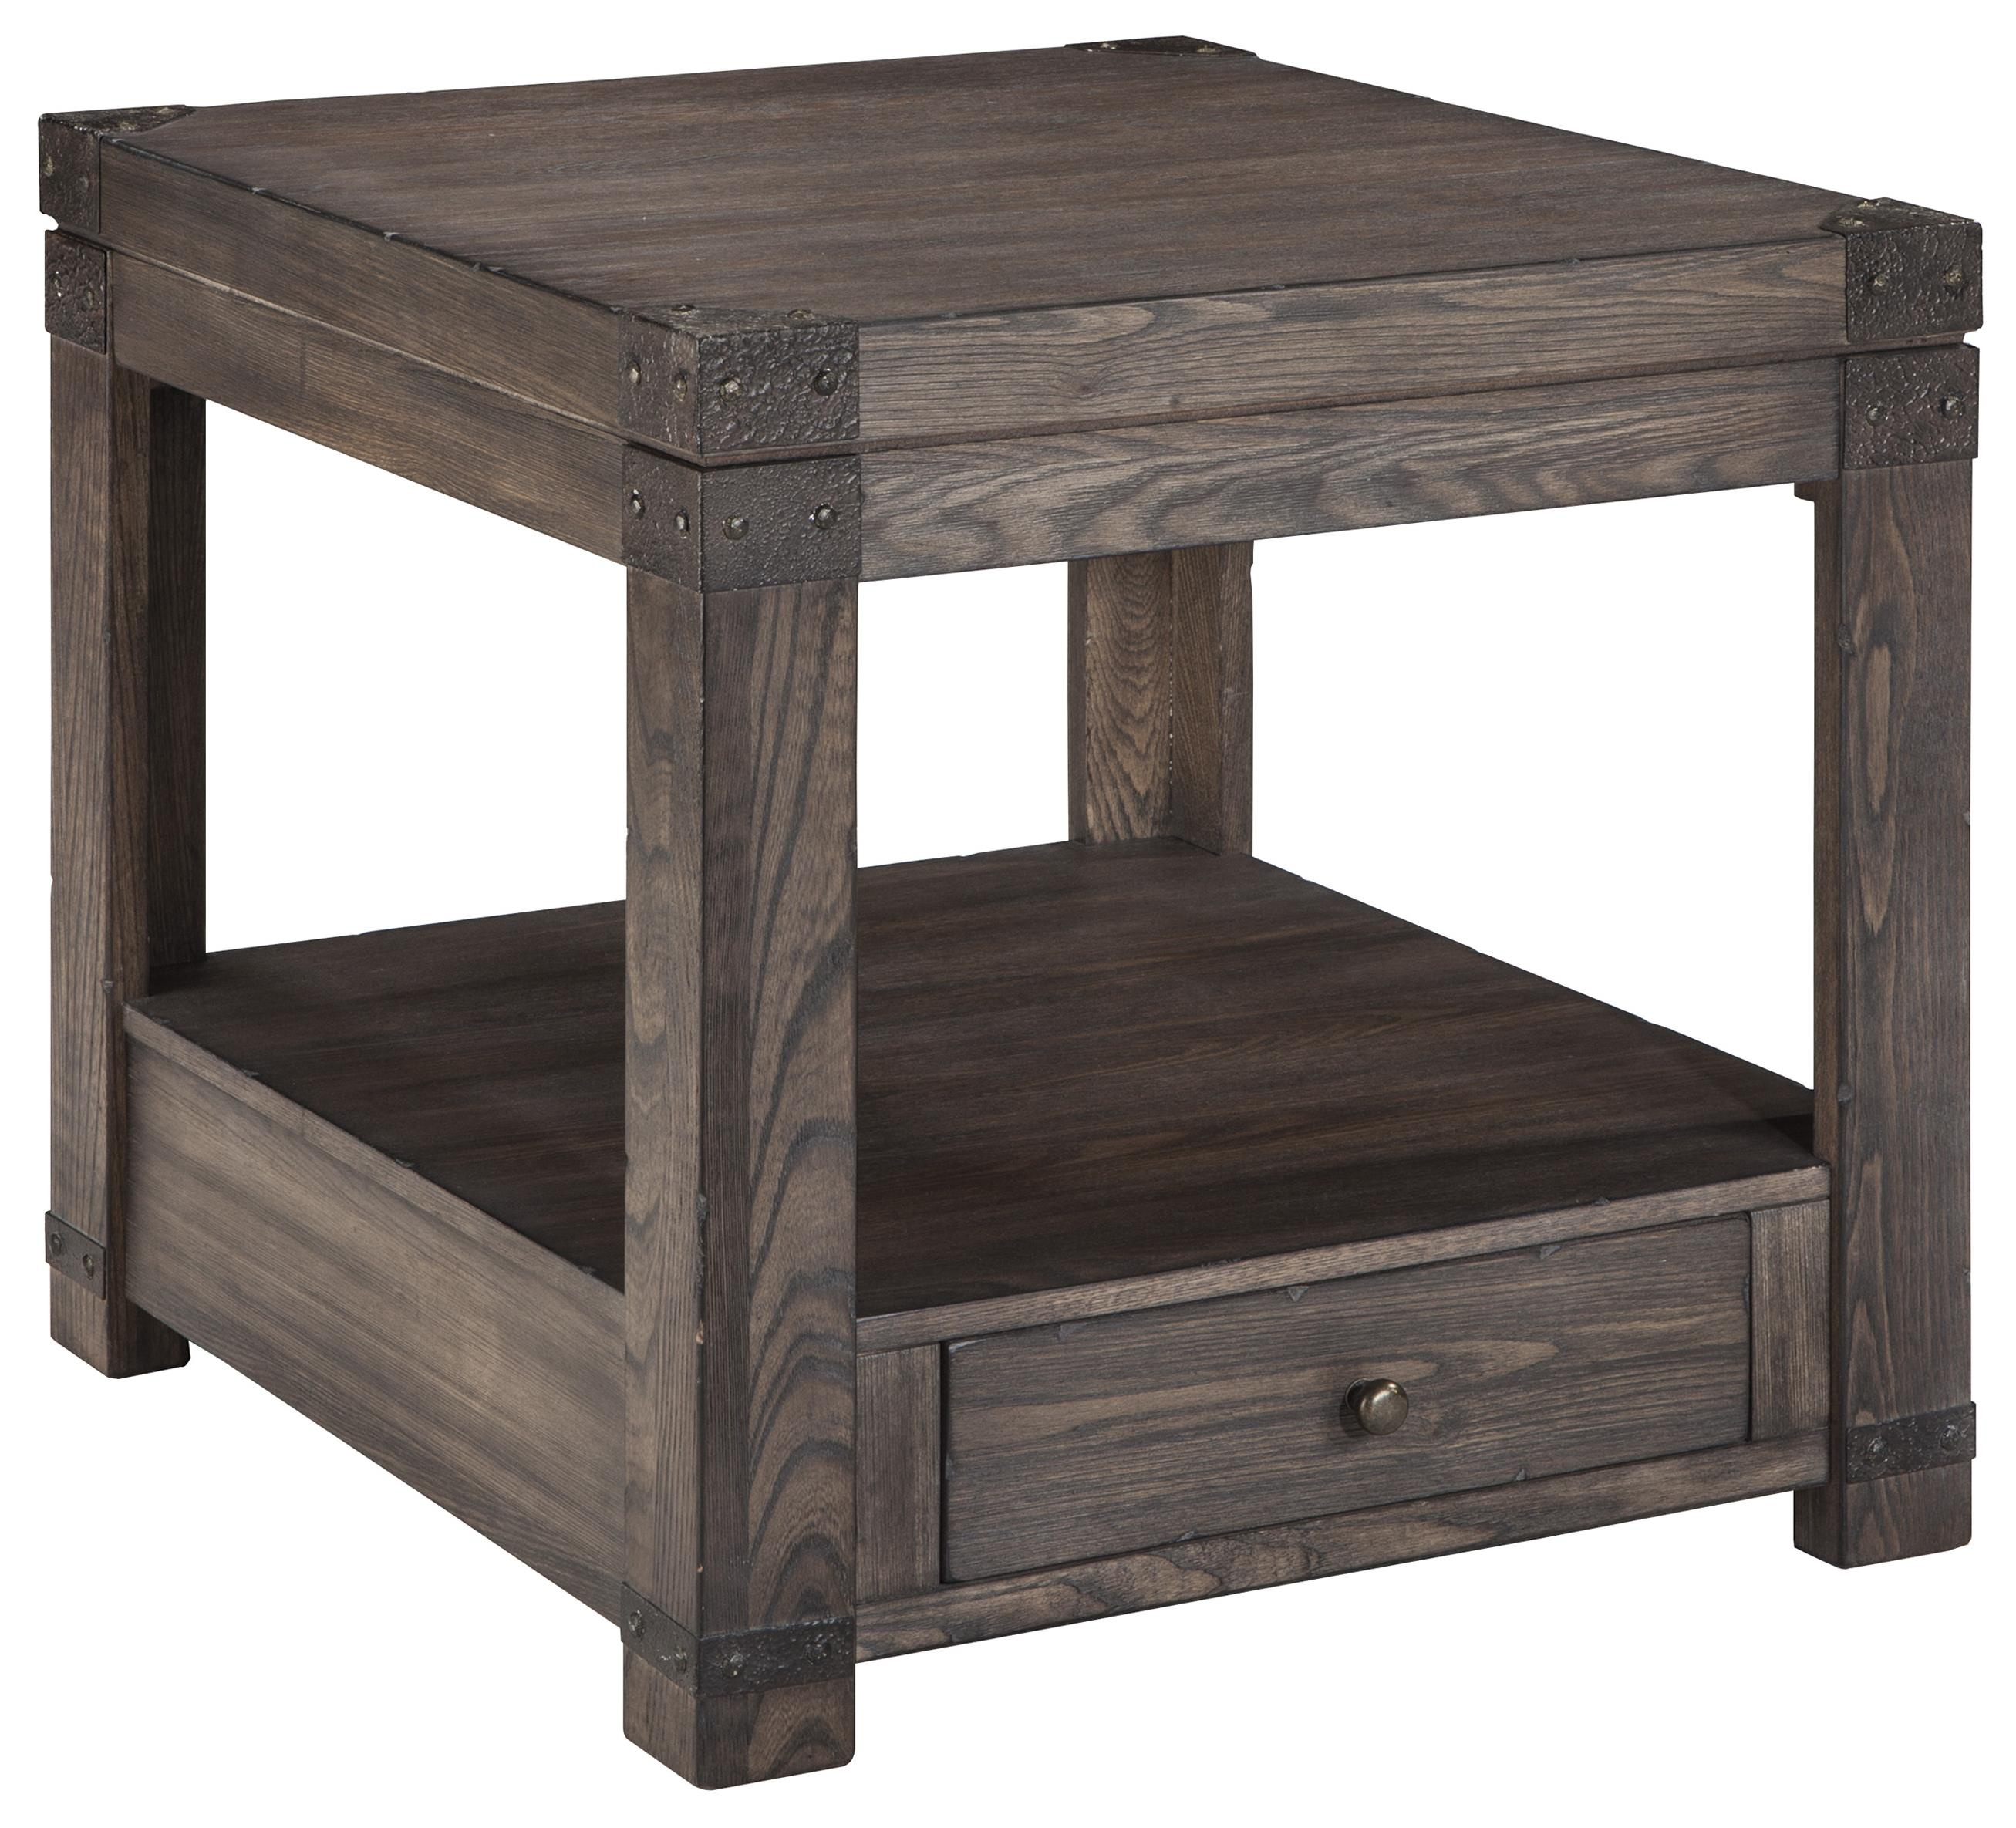 Signature Design by Ashley Burladen Rectangular End Table - Item Number: T846-3